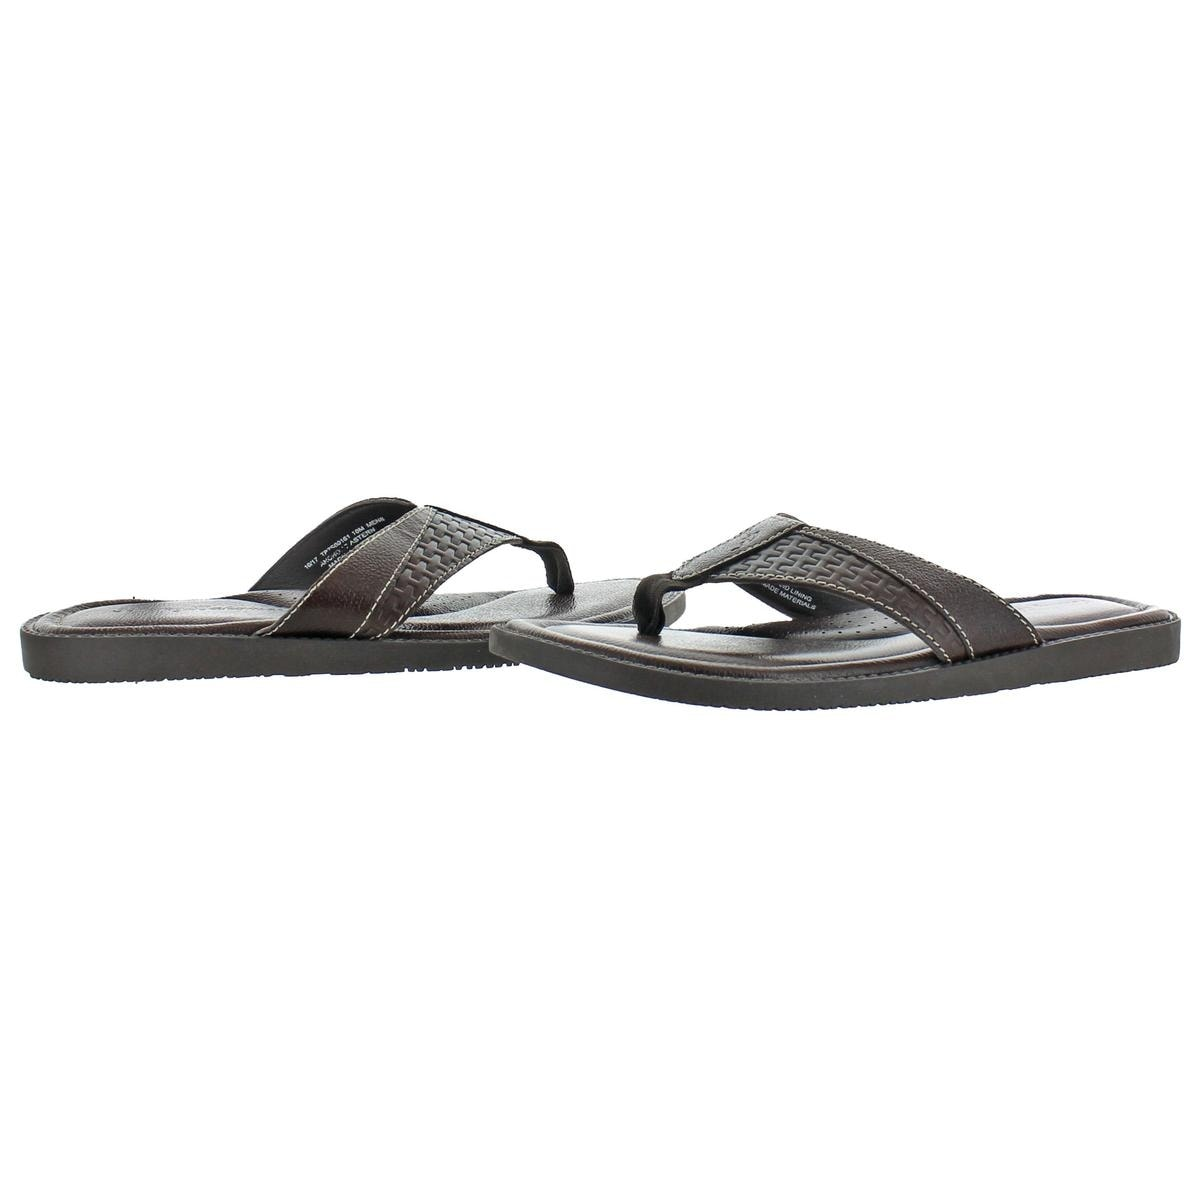 3581f873aa7f Shop Tommy Bahama Mens Anchors Astern Flat Sandals Summer Thongs - Free  Shipping On Orders Over  45 - Overstock - 22985307